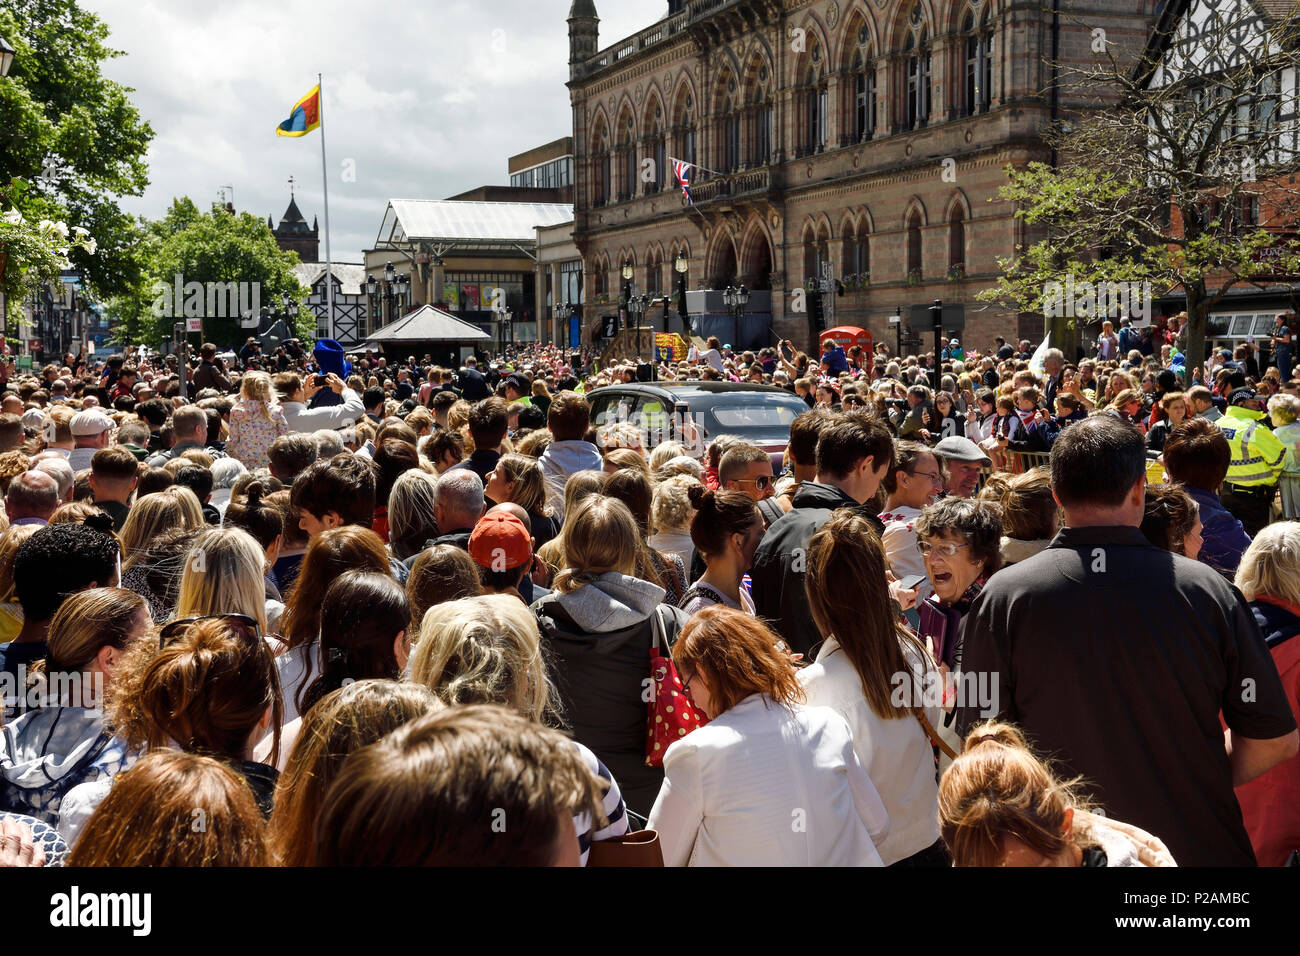 Chester, UK. 14th June 2018. Crowds in front of the town hall as the Queen and Duchess of Sussex go on a walkabout after opening the Storyhouse theatre. Credit: Andrew Paterson/Alamy Live News - Stock Image